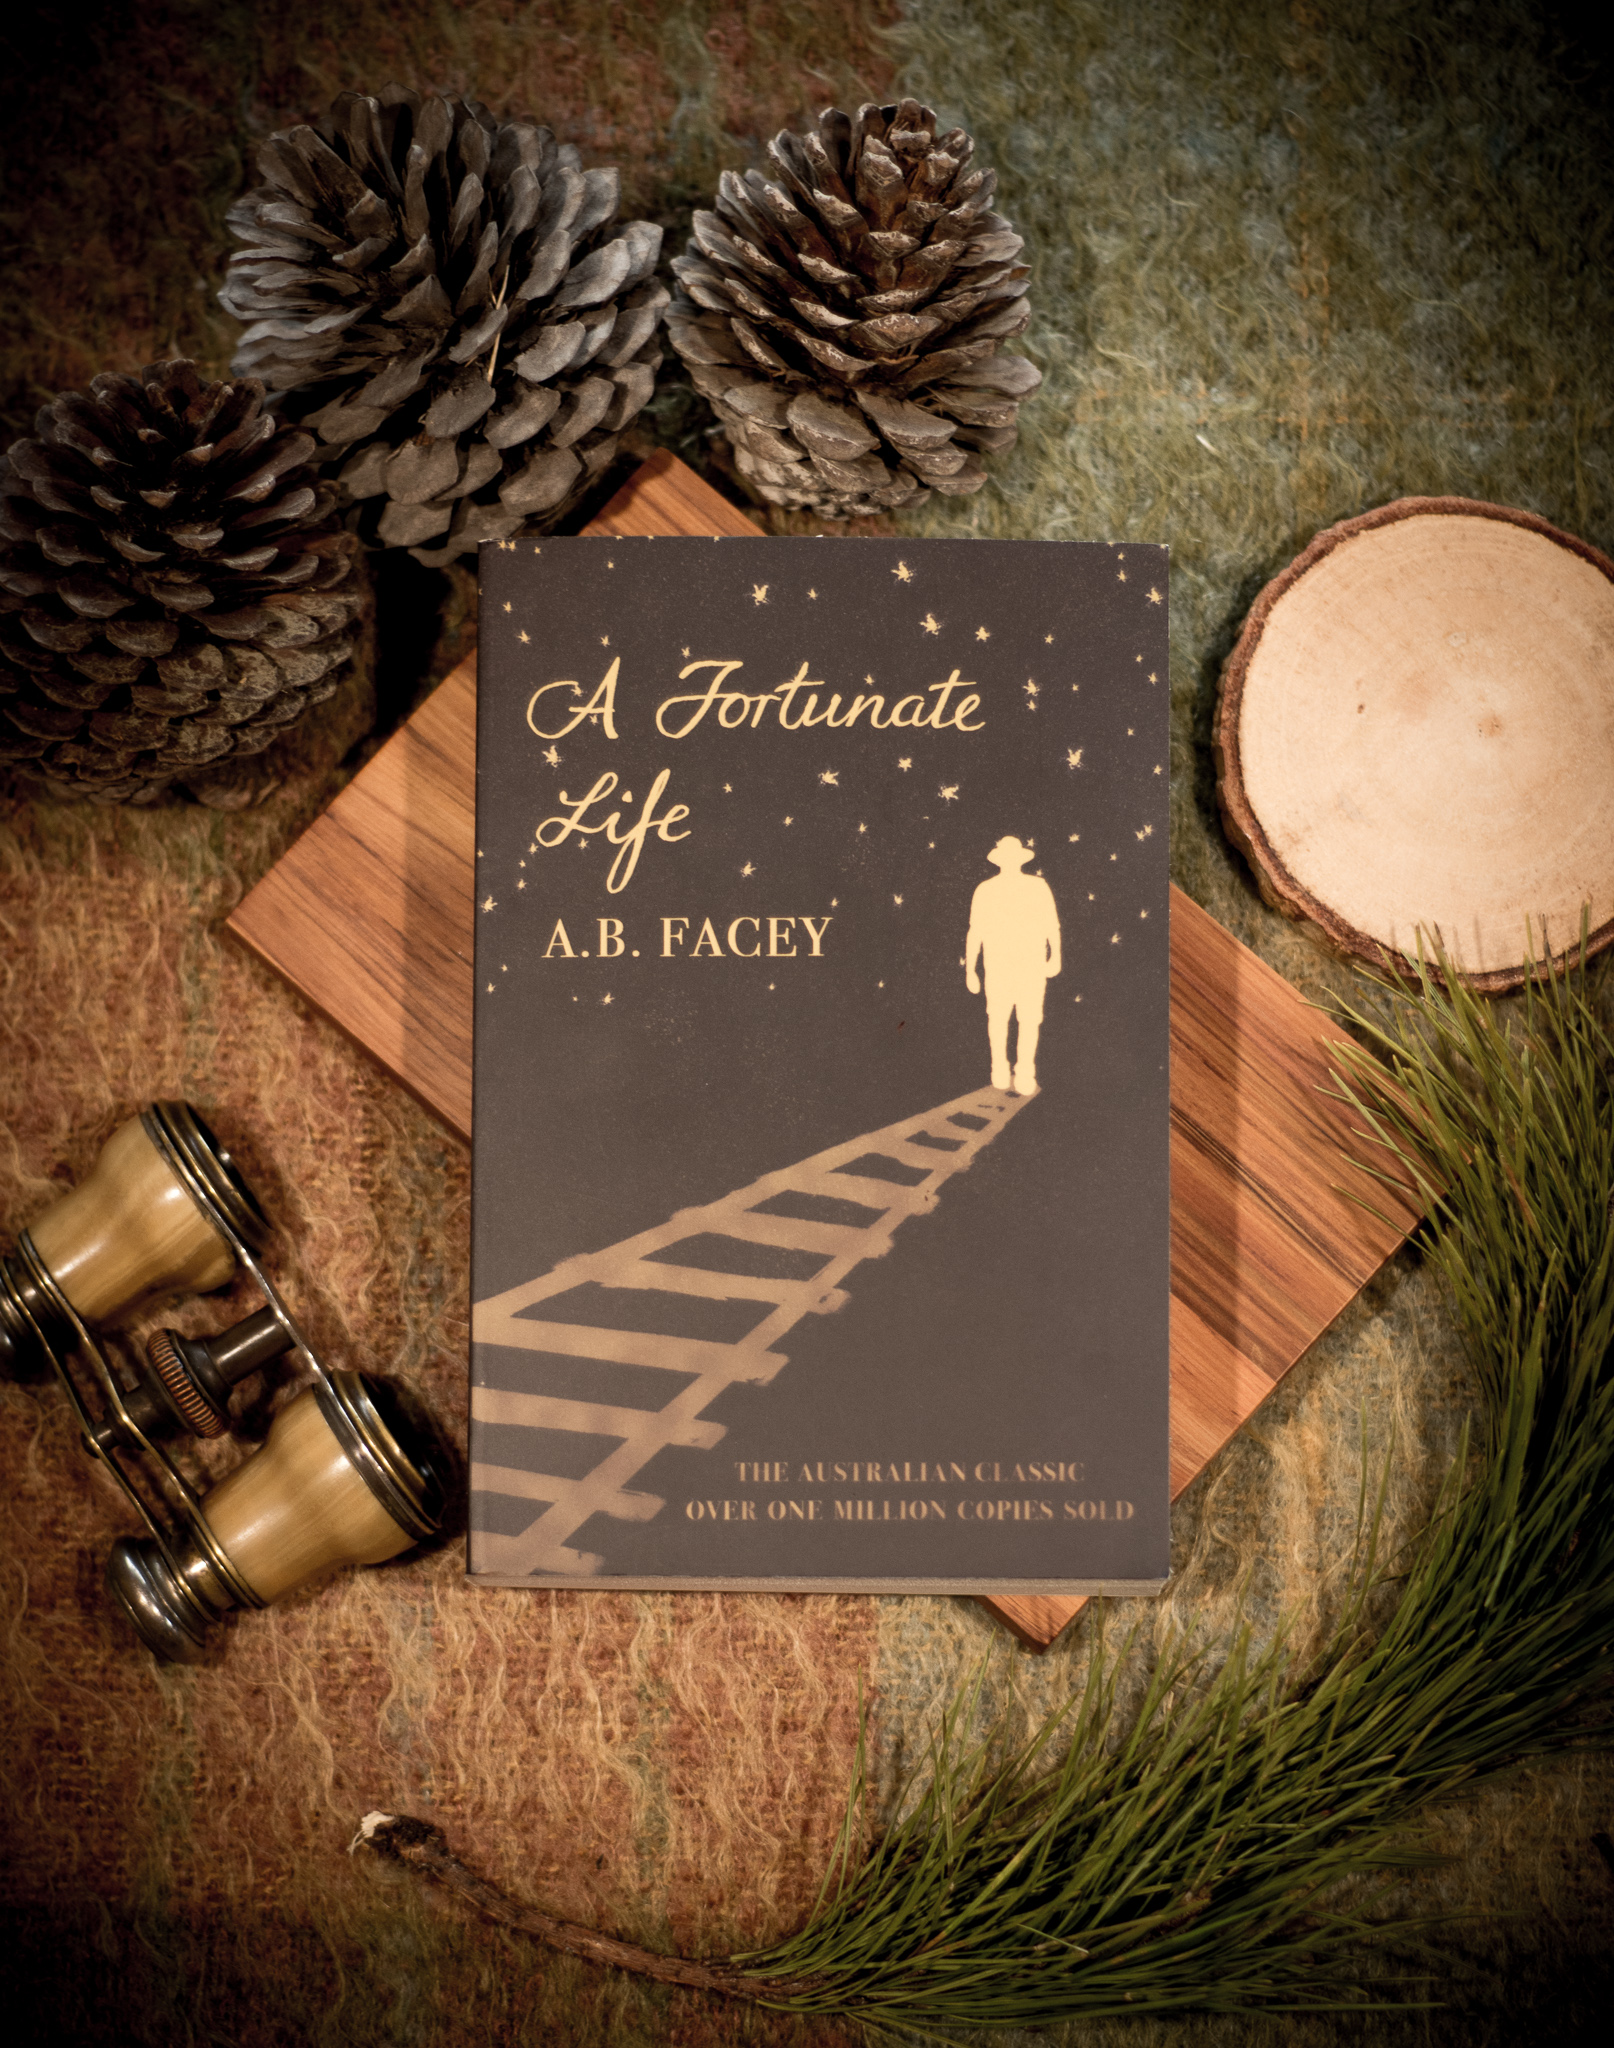 A Fortunate Life - Fremantle Press, 2018I was contacted by Fremantle Press, a publisher in Western Australia. They had just regained the rights to one of their original titles, A Fortunate Life by AB Facey. This is an Australian classic, and with its return to Fremantle Press they decided to create three new editions of it, all with different target markets… [READ MORE]